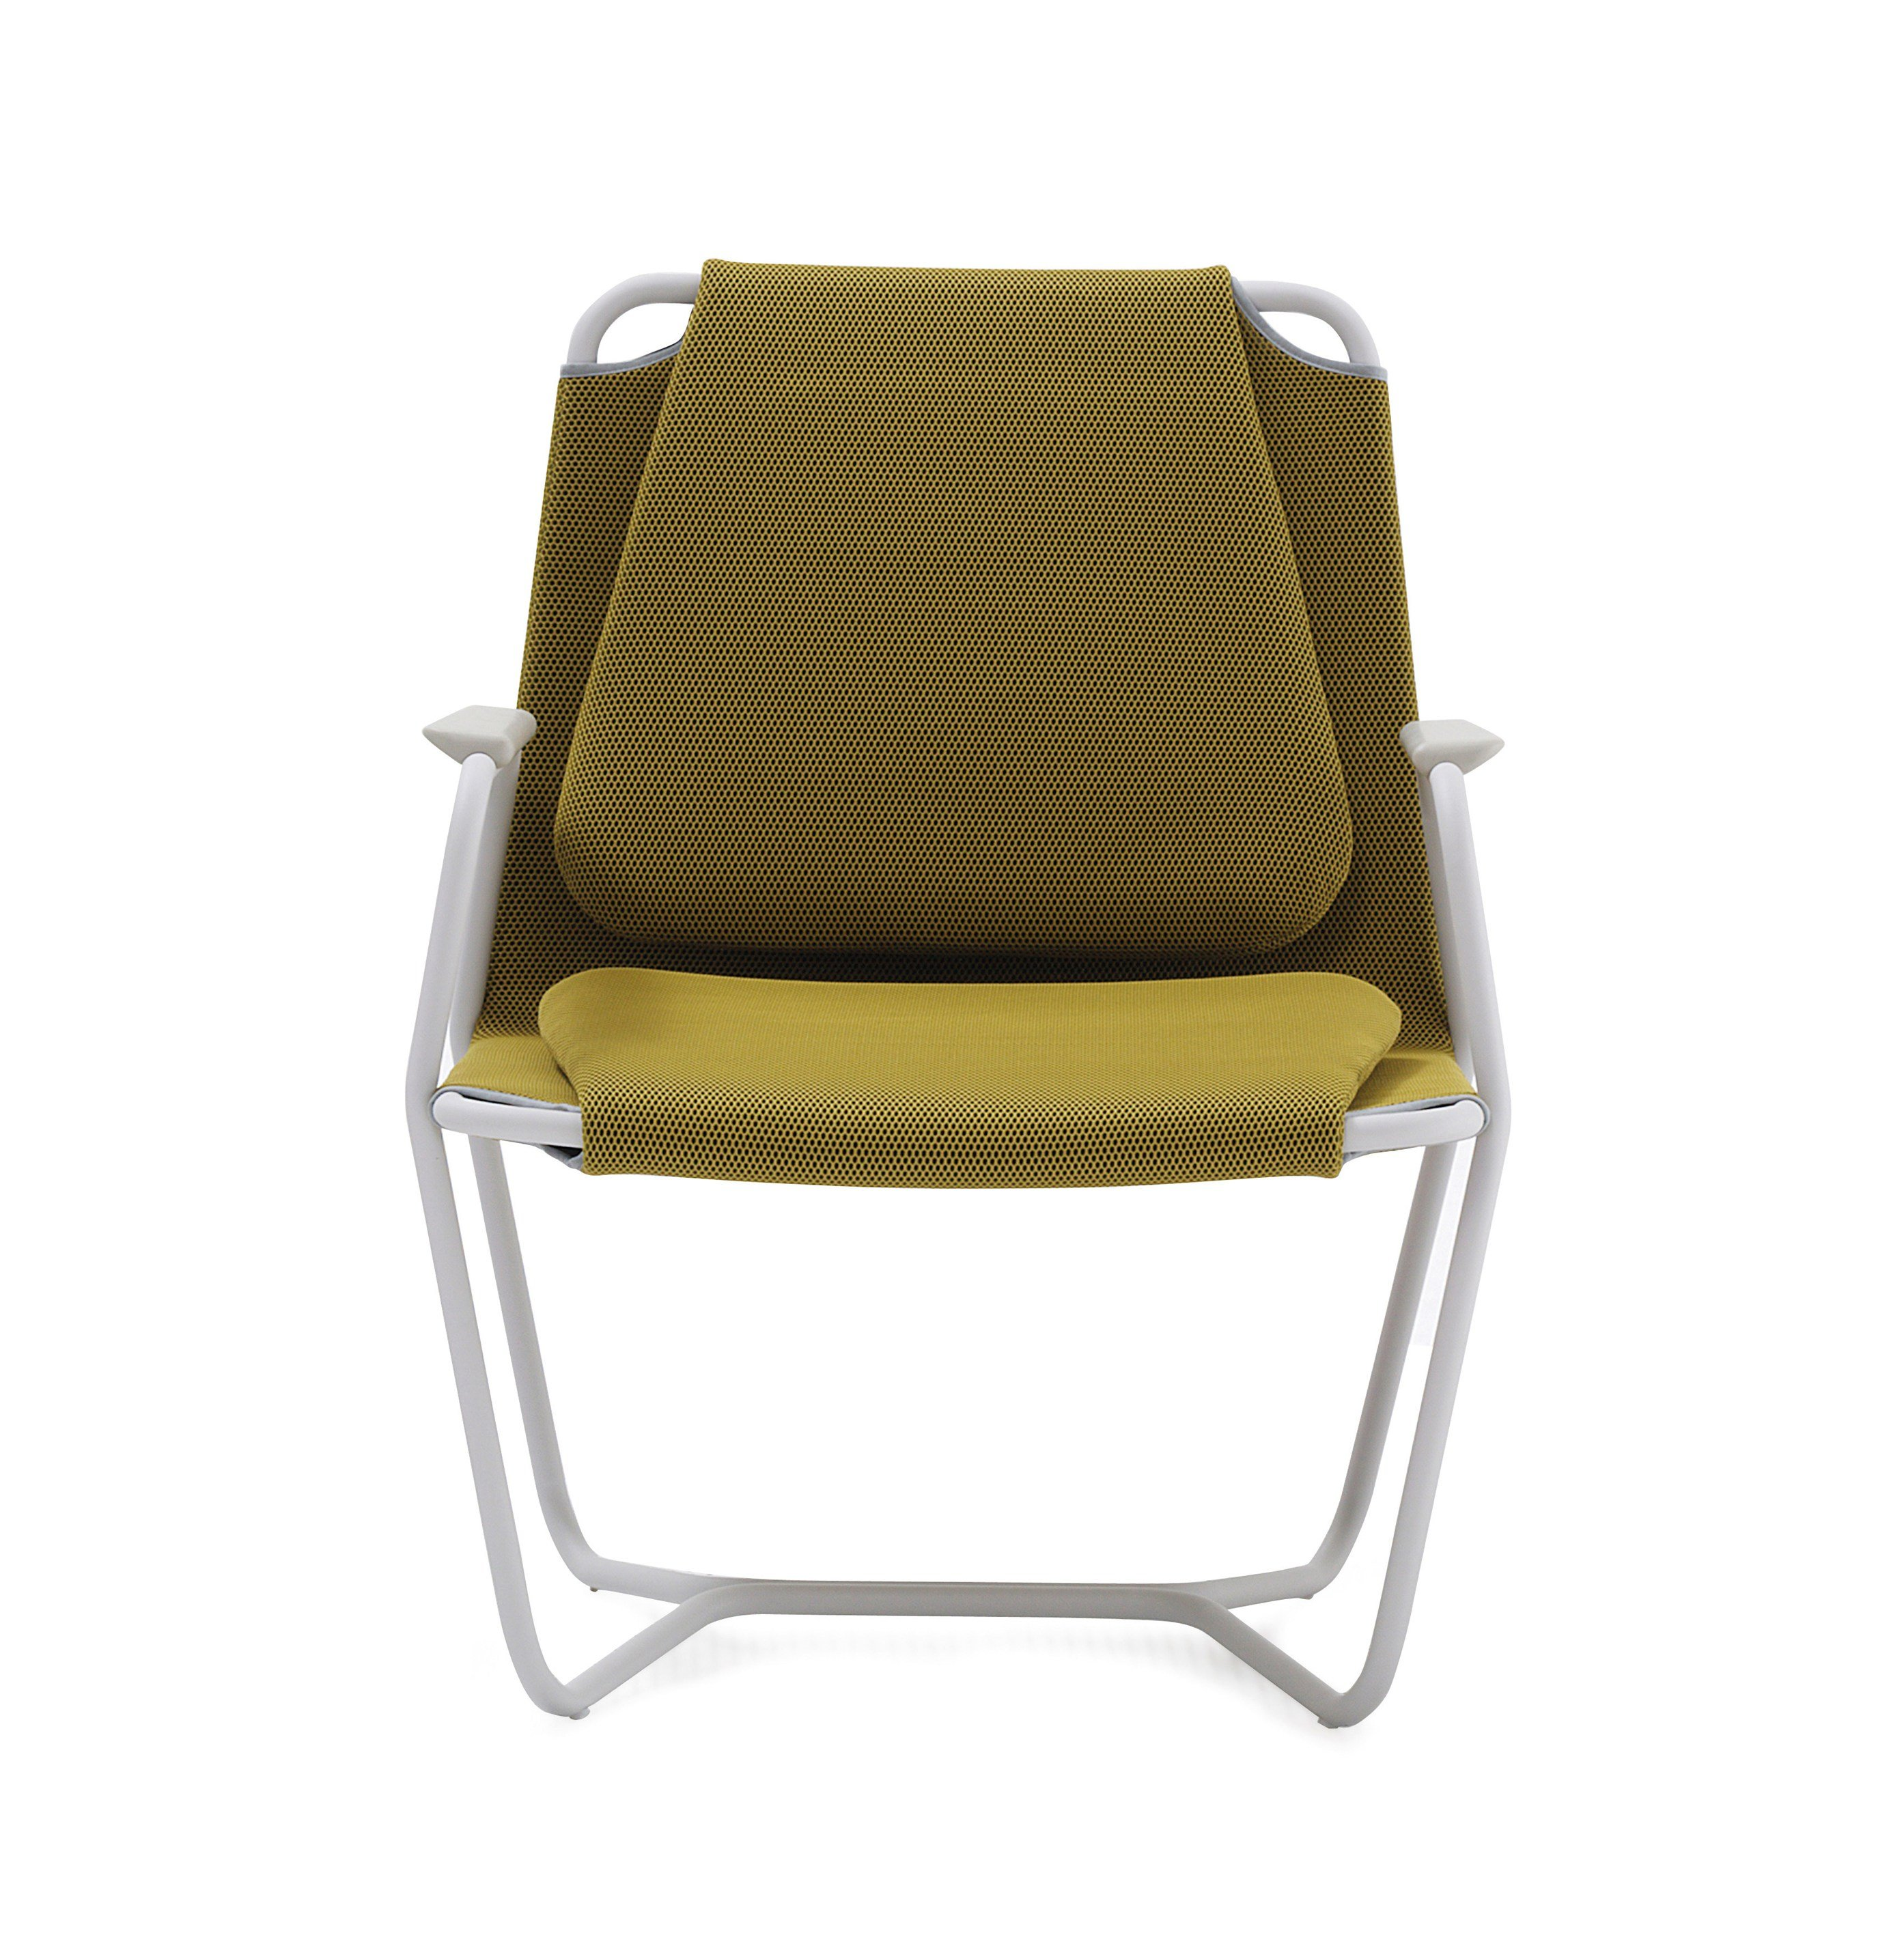 Casta easy chair by sancal design jose manuel ferrero for Easy chair designs